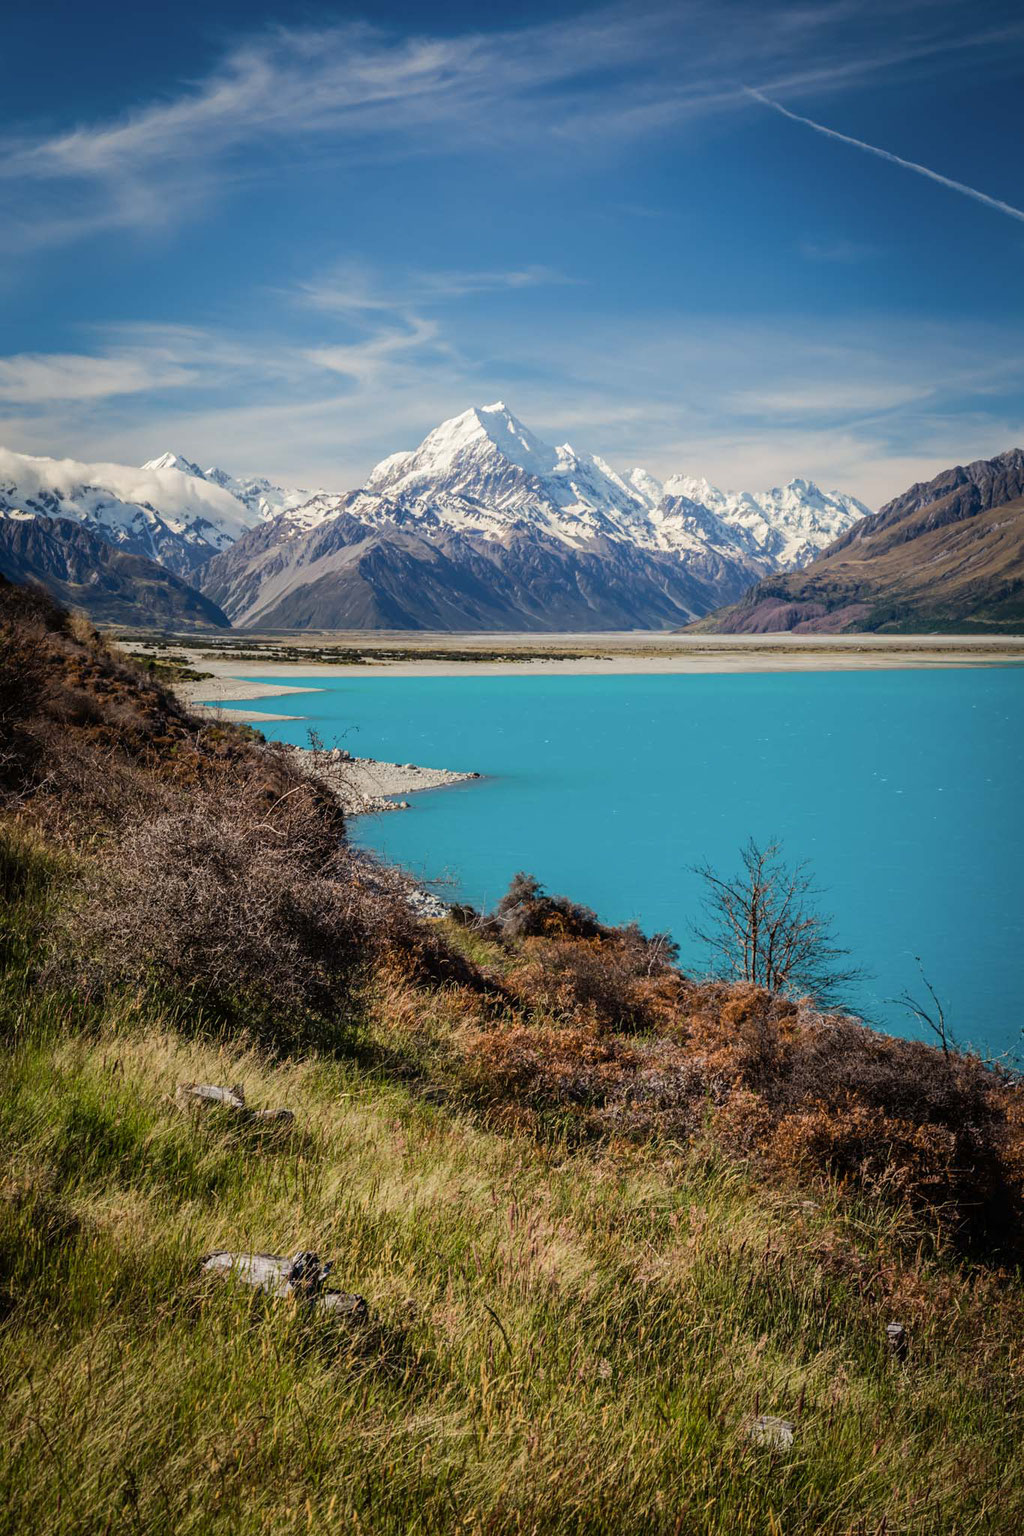 Lake Pukaki along the road to Mount Cook village